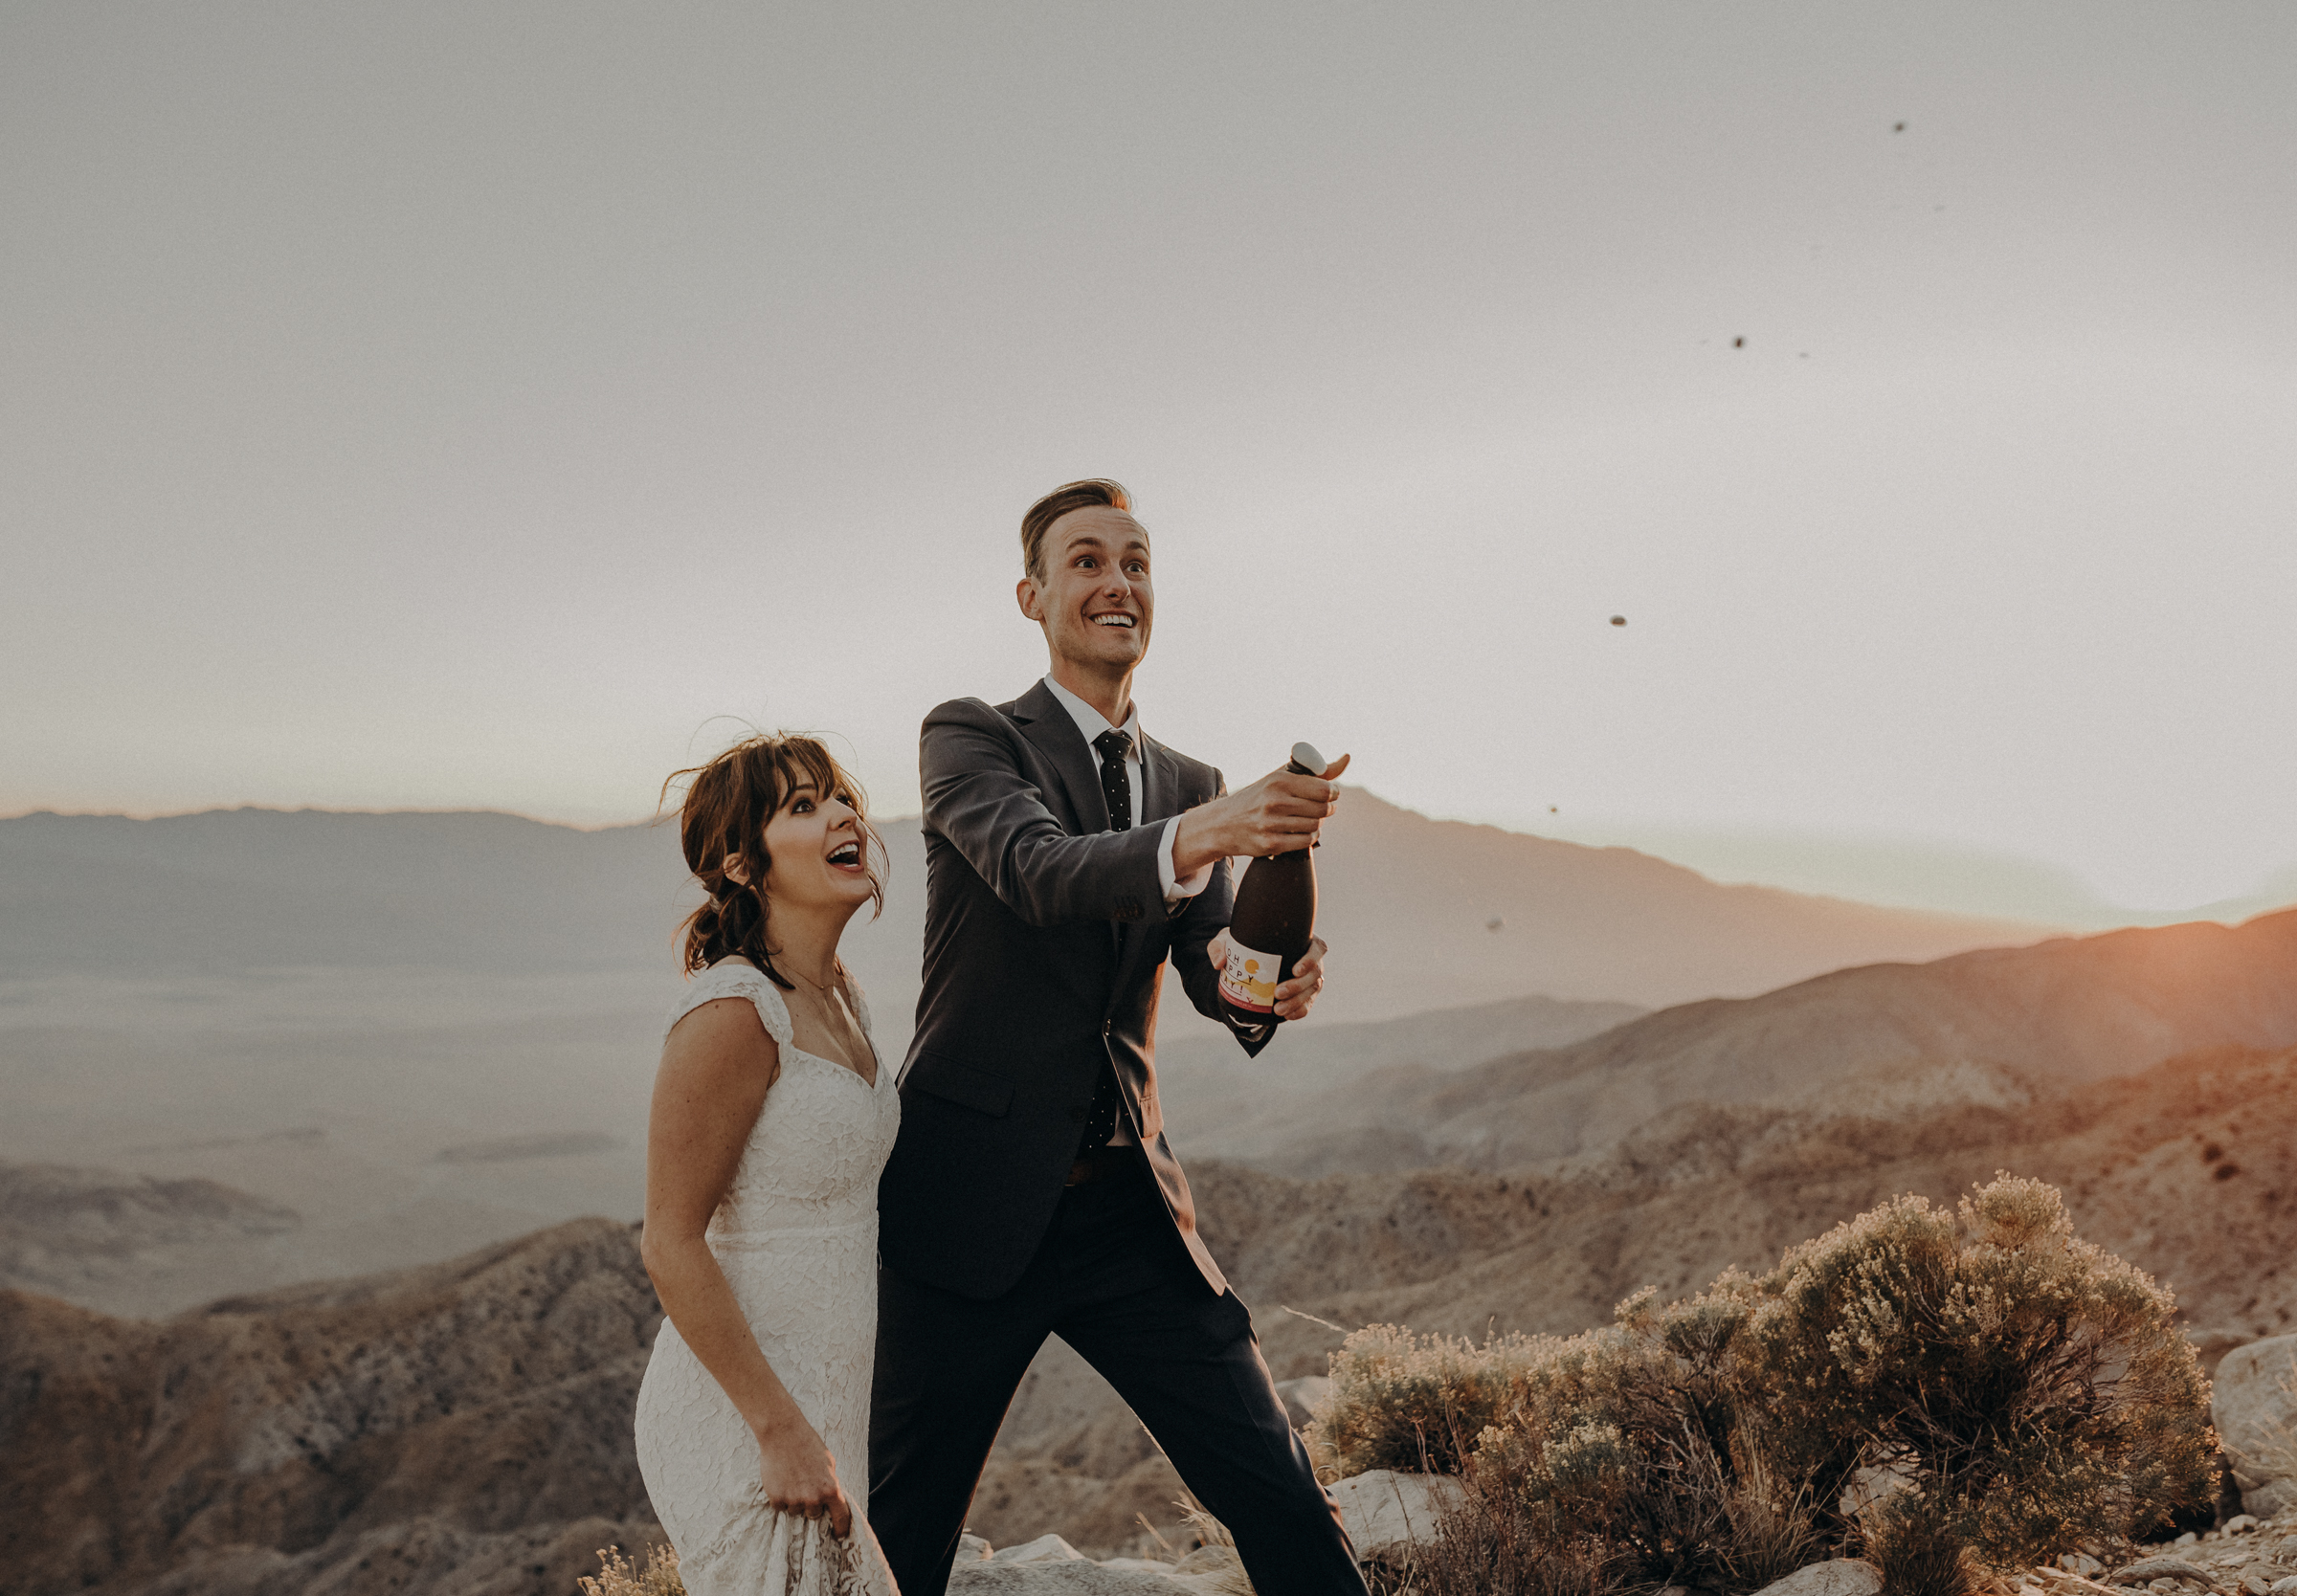 Joshua Tree Elopement - Los Angeles Wedding Photographers - IsaiahAndTaylor.com-115.jpg